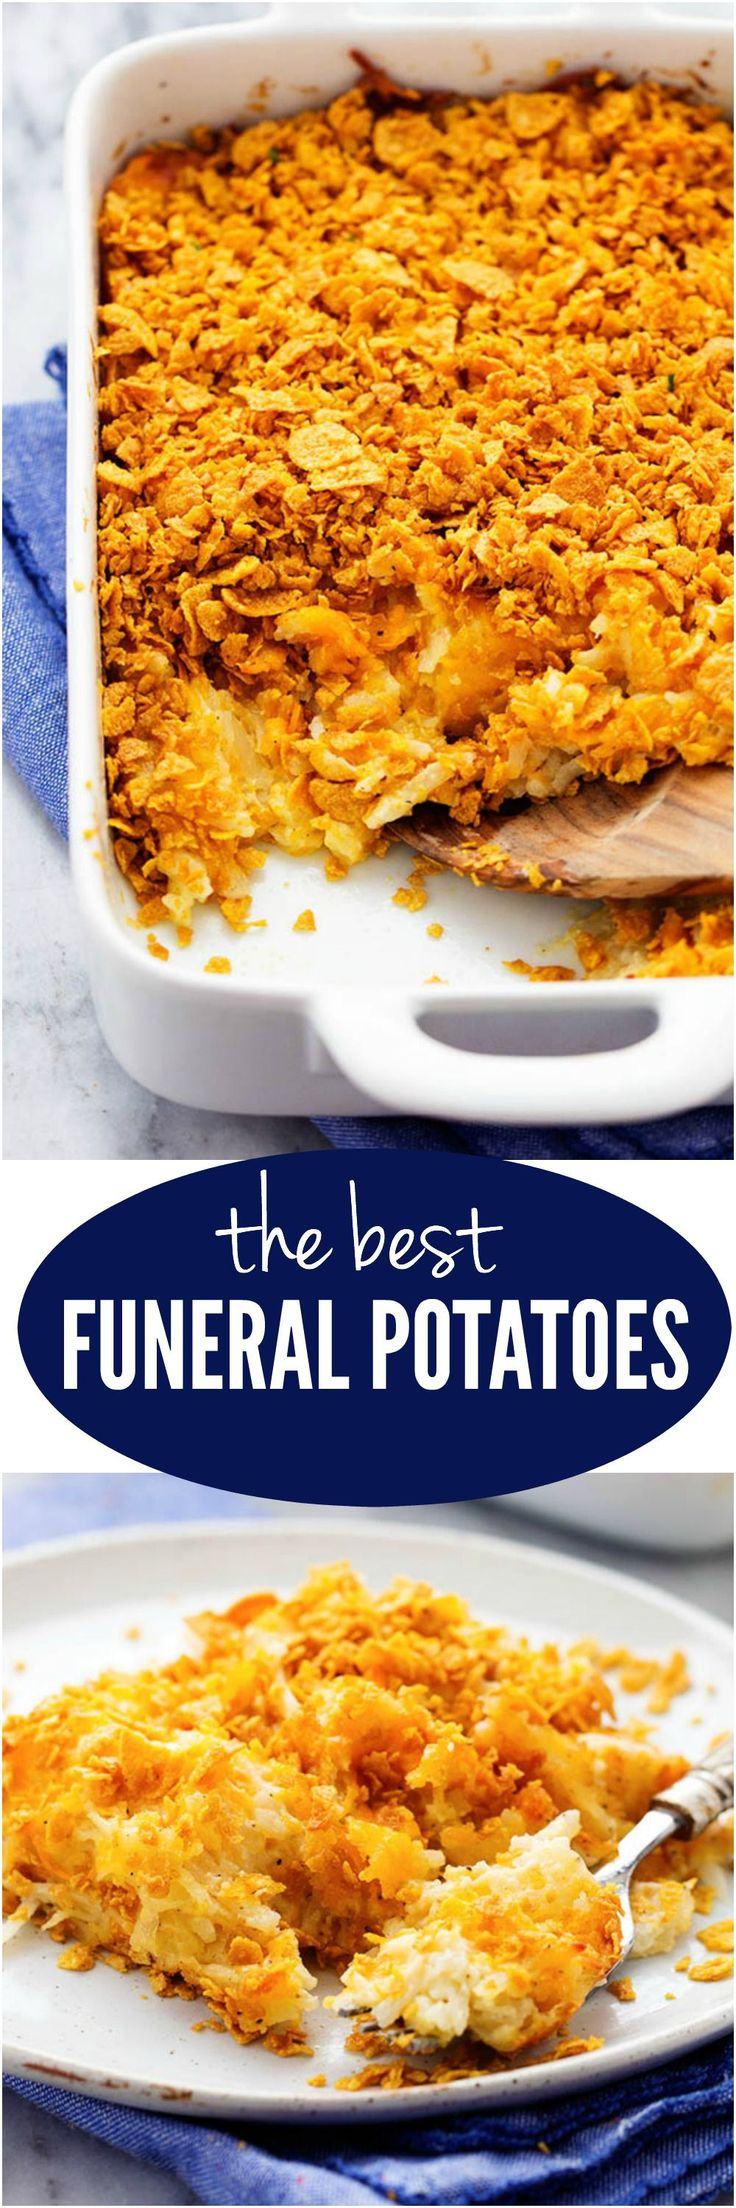 The Best Funeral Potatoes - A cheesy potato casserole full of melted cheese, sour cream, onions, and garlic with a crunchy top. This is full of amazing flavor and will be the star of the dinner table! (potatoe casserole recipes chicken)